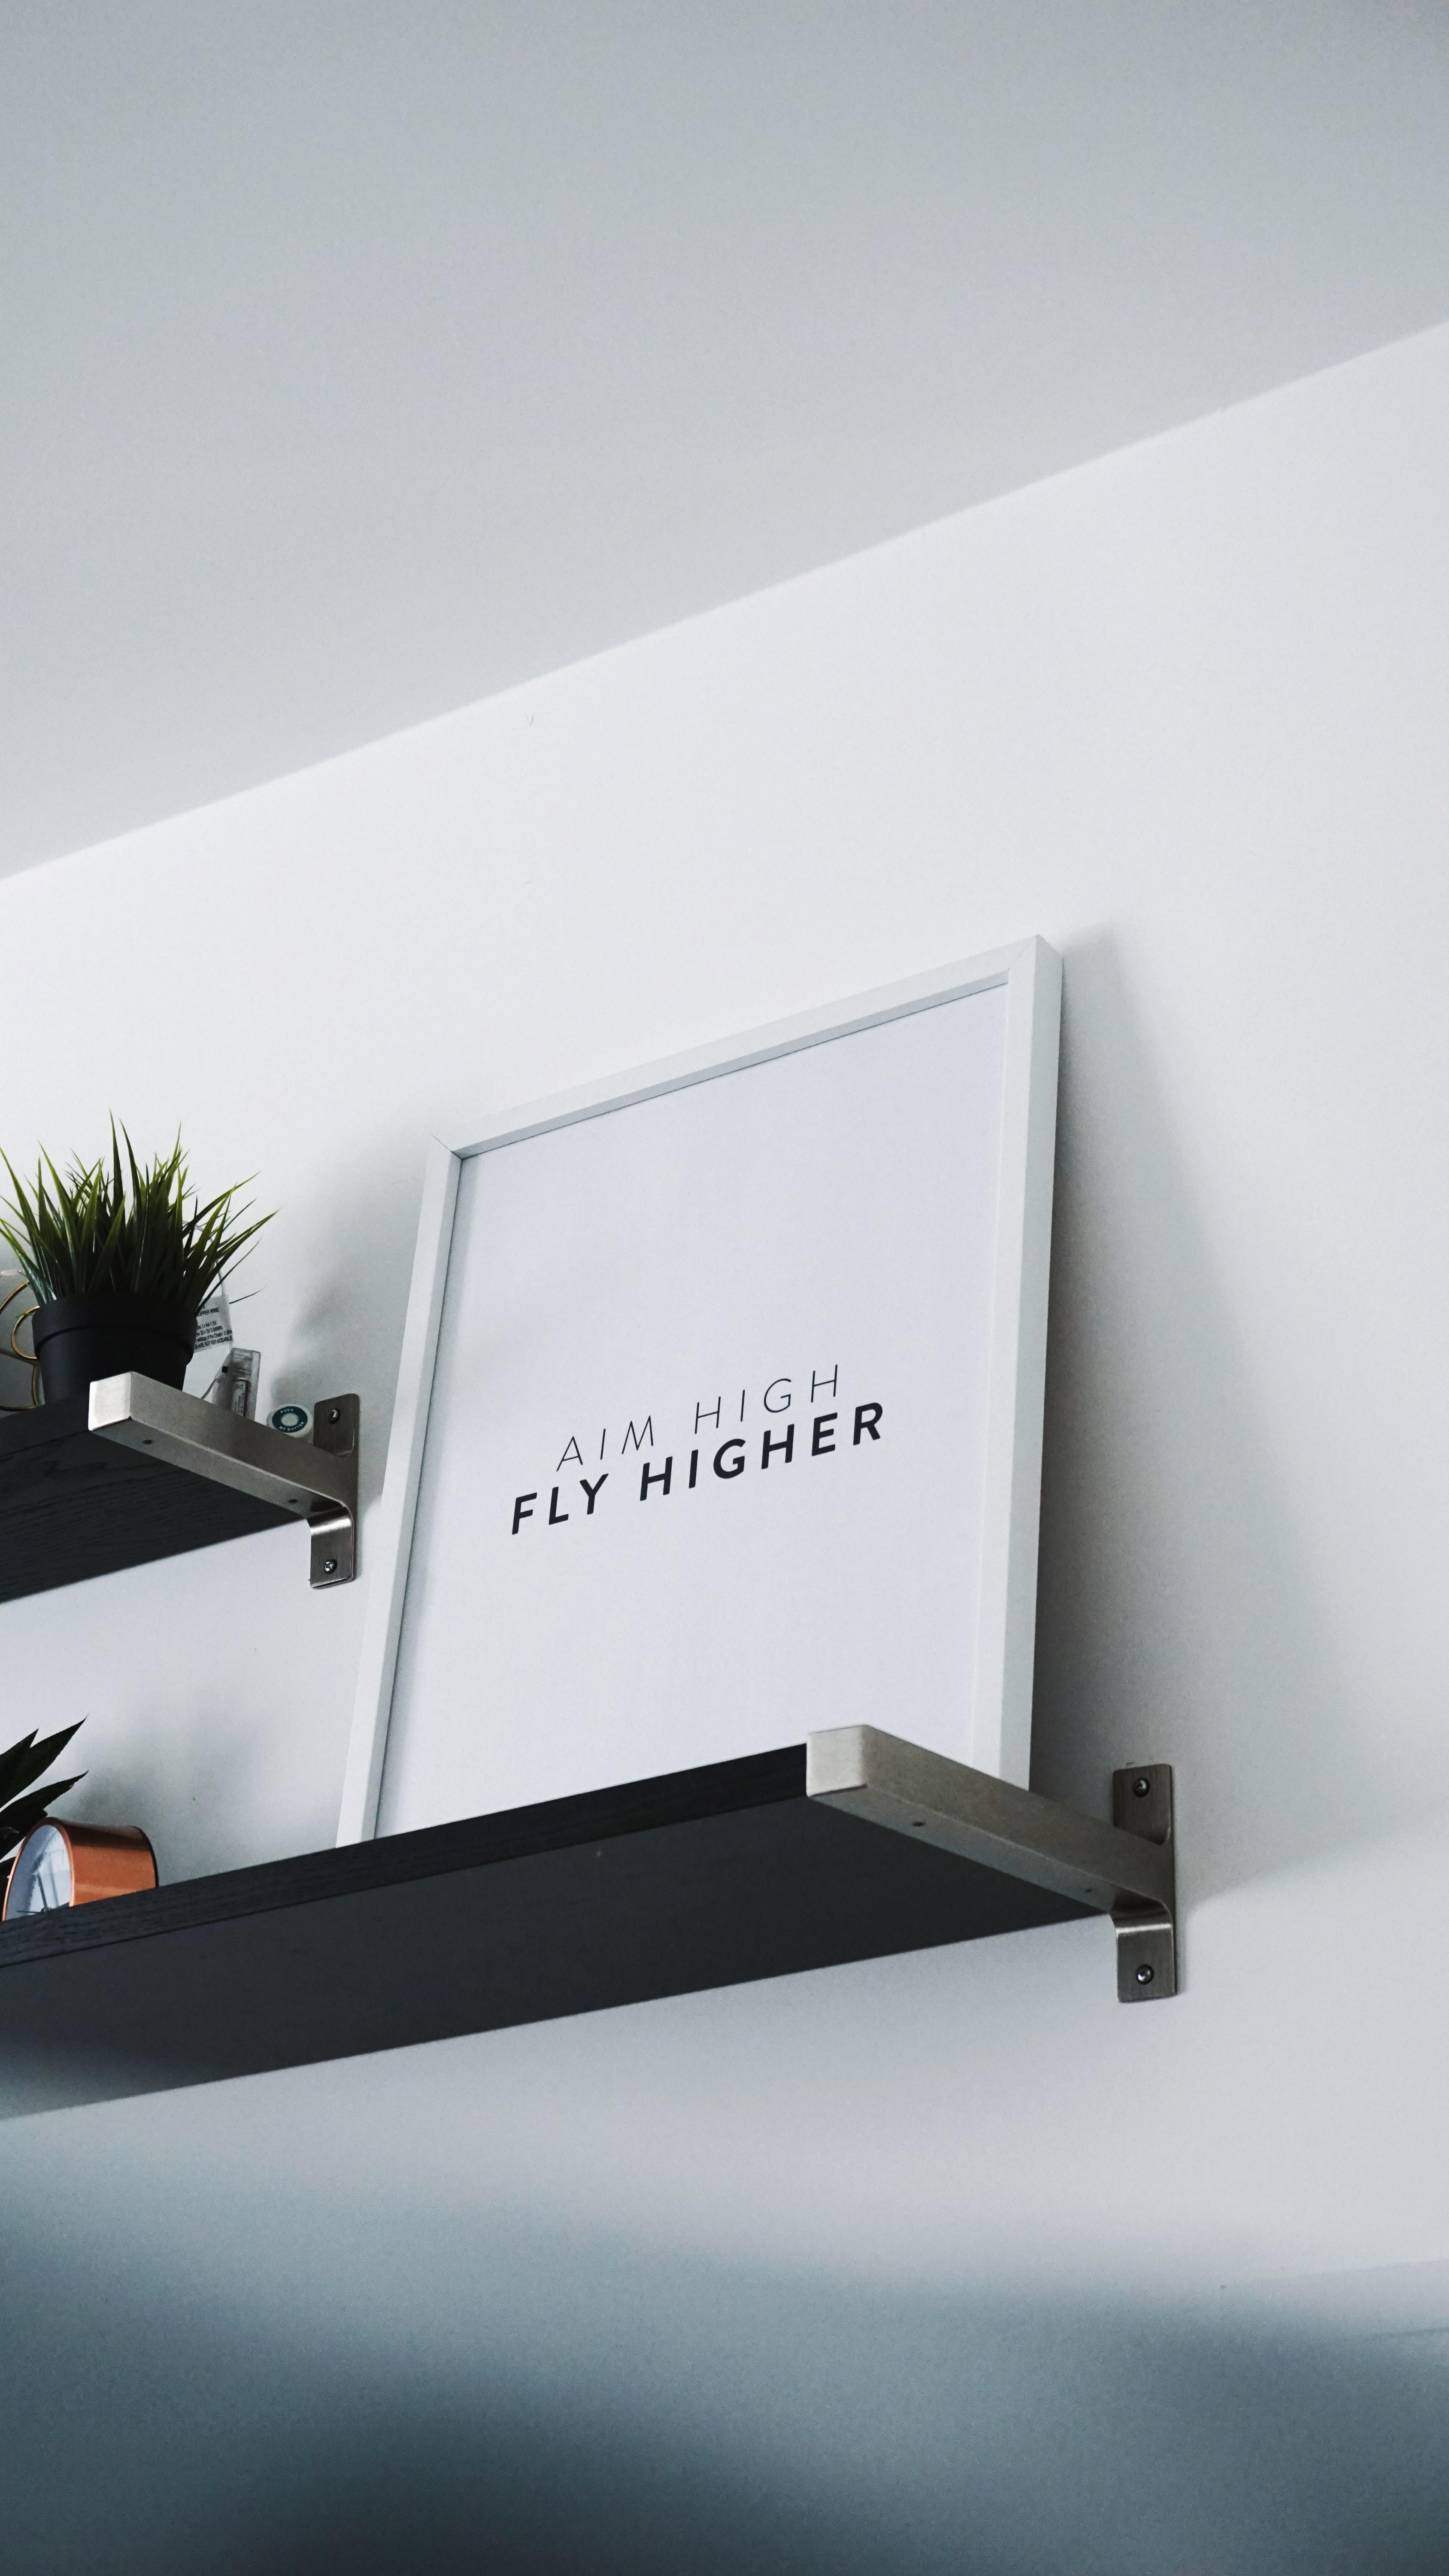 aim high fly higher photo frame